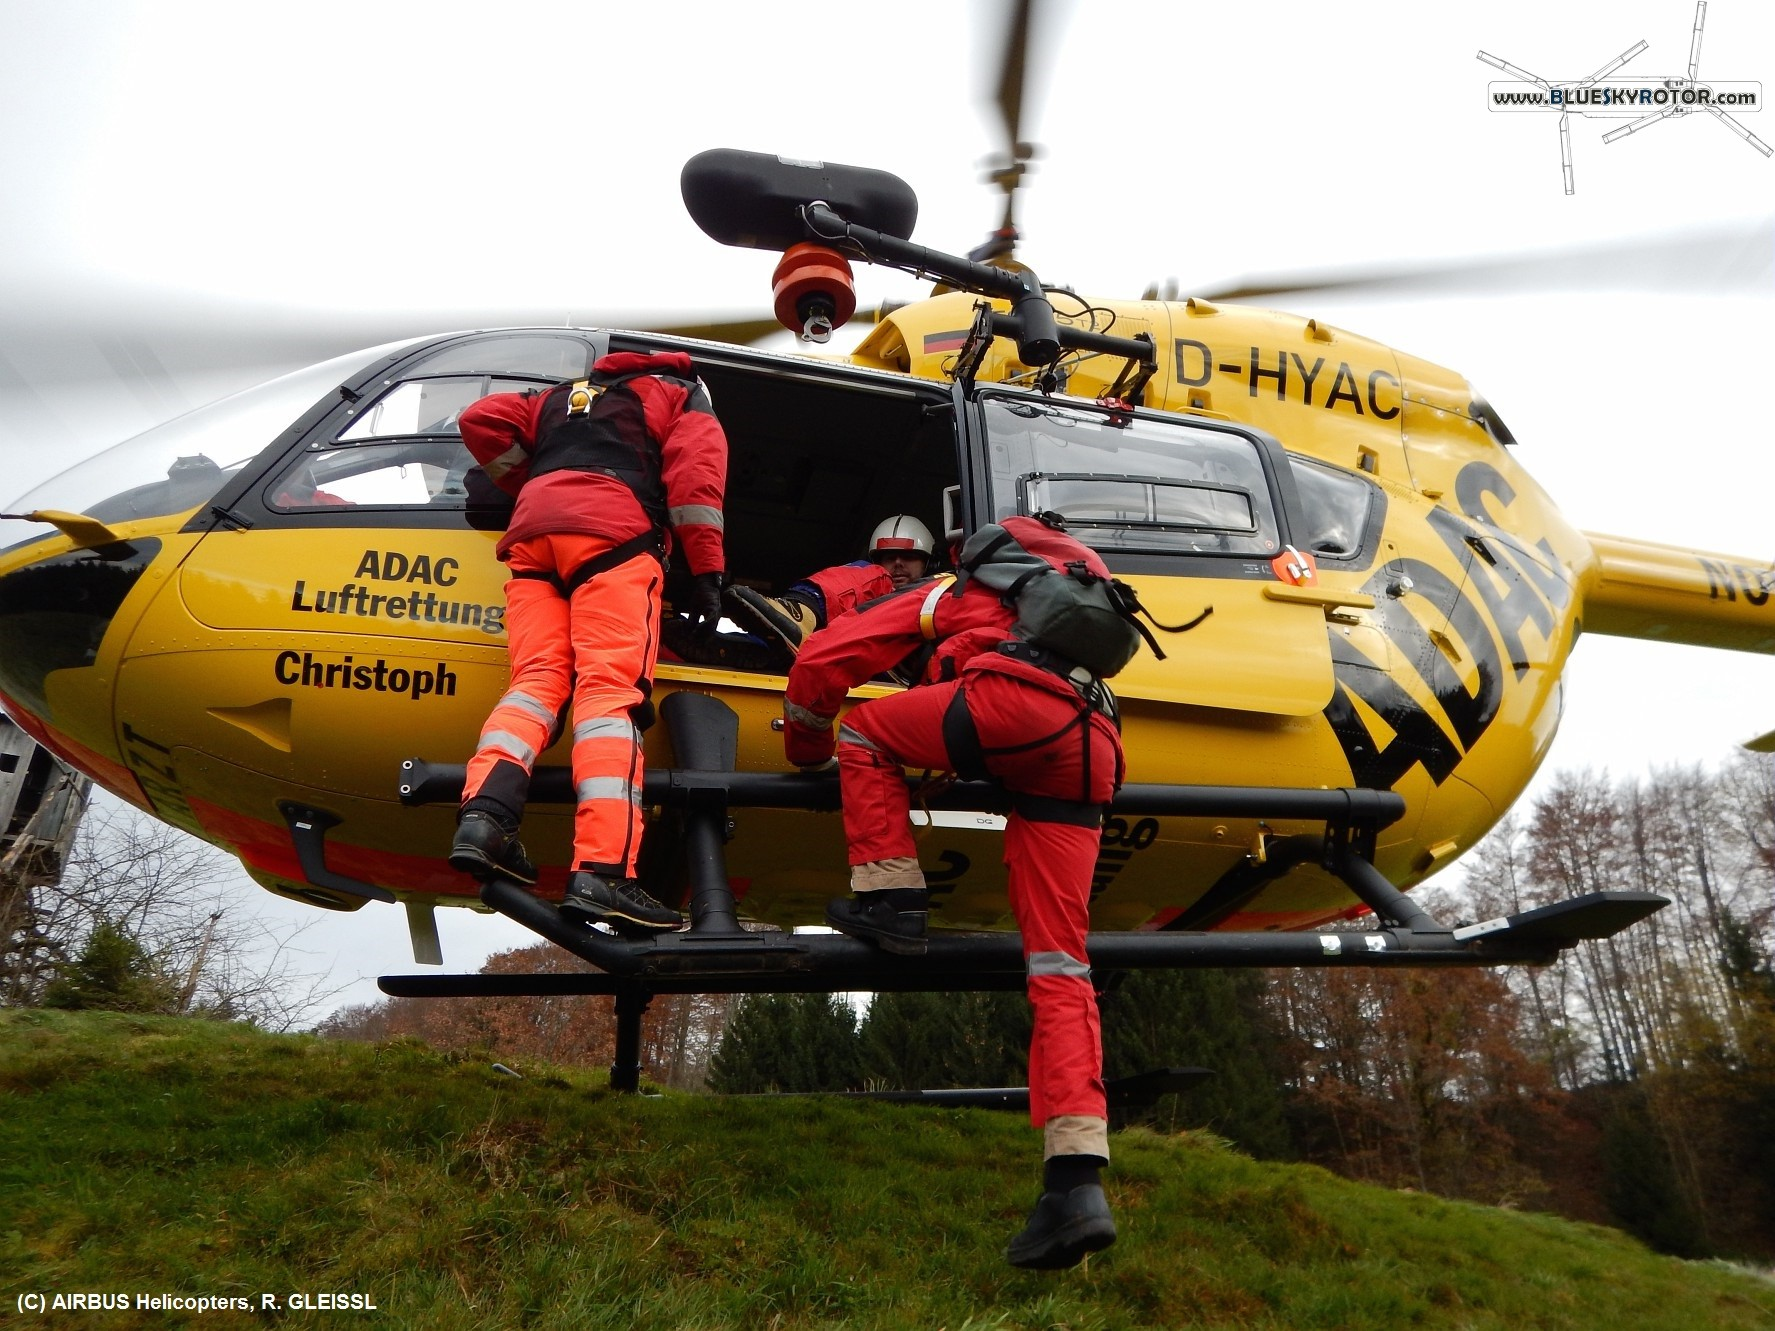 ADAC'S FIRST EC145 T2 RESCUE WINCH TRAINING | Article ...